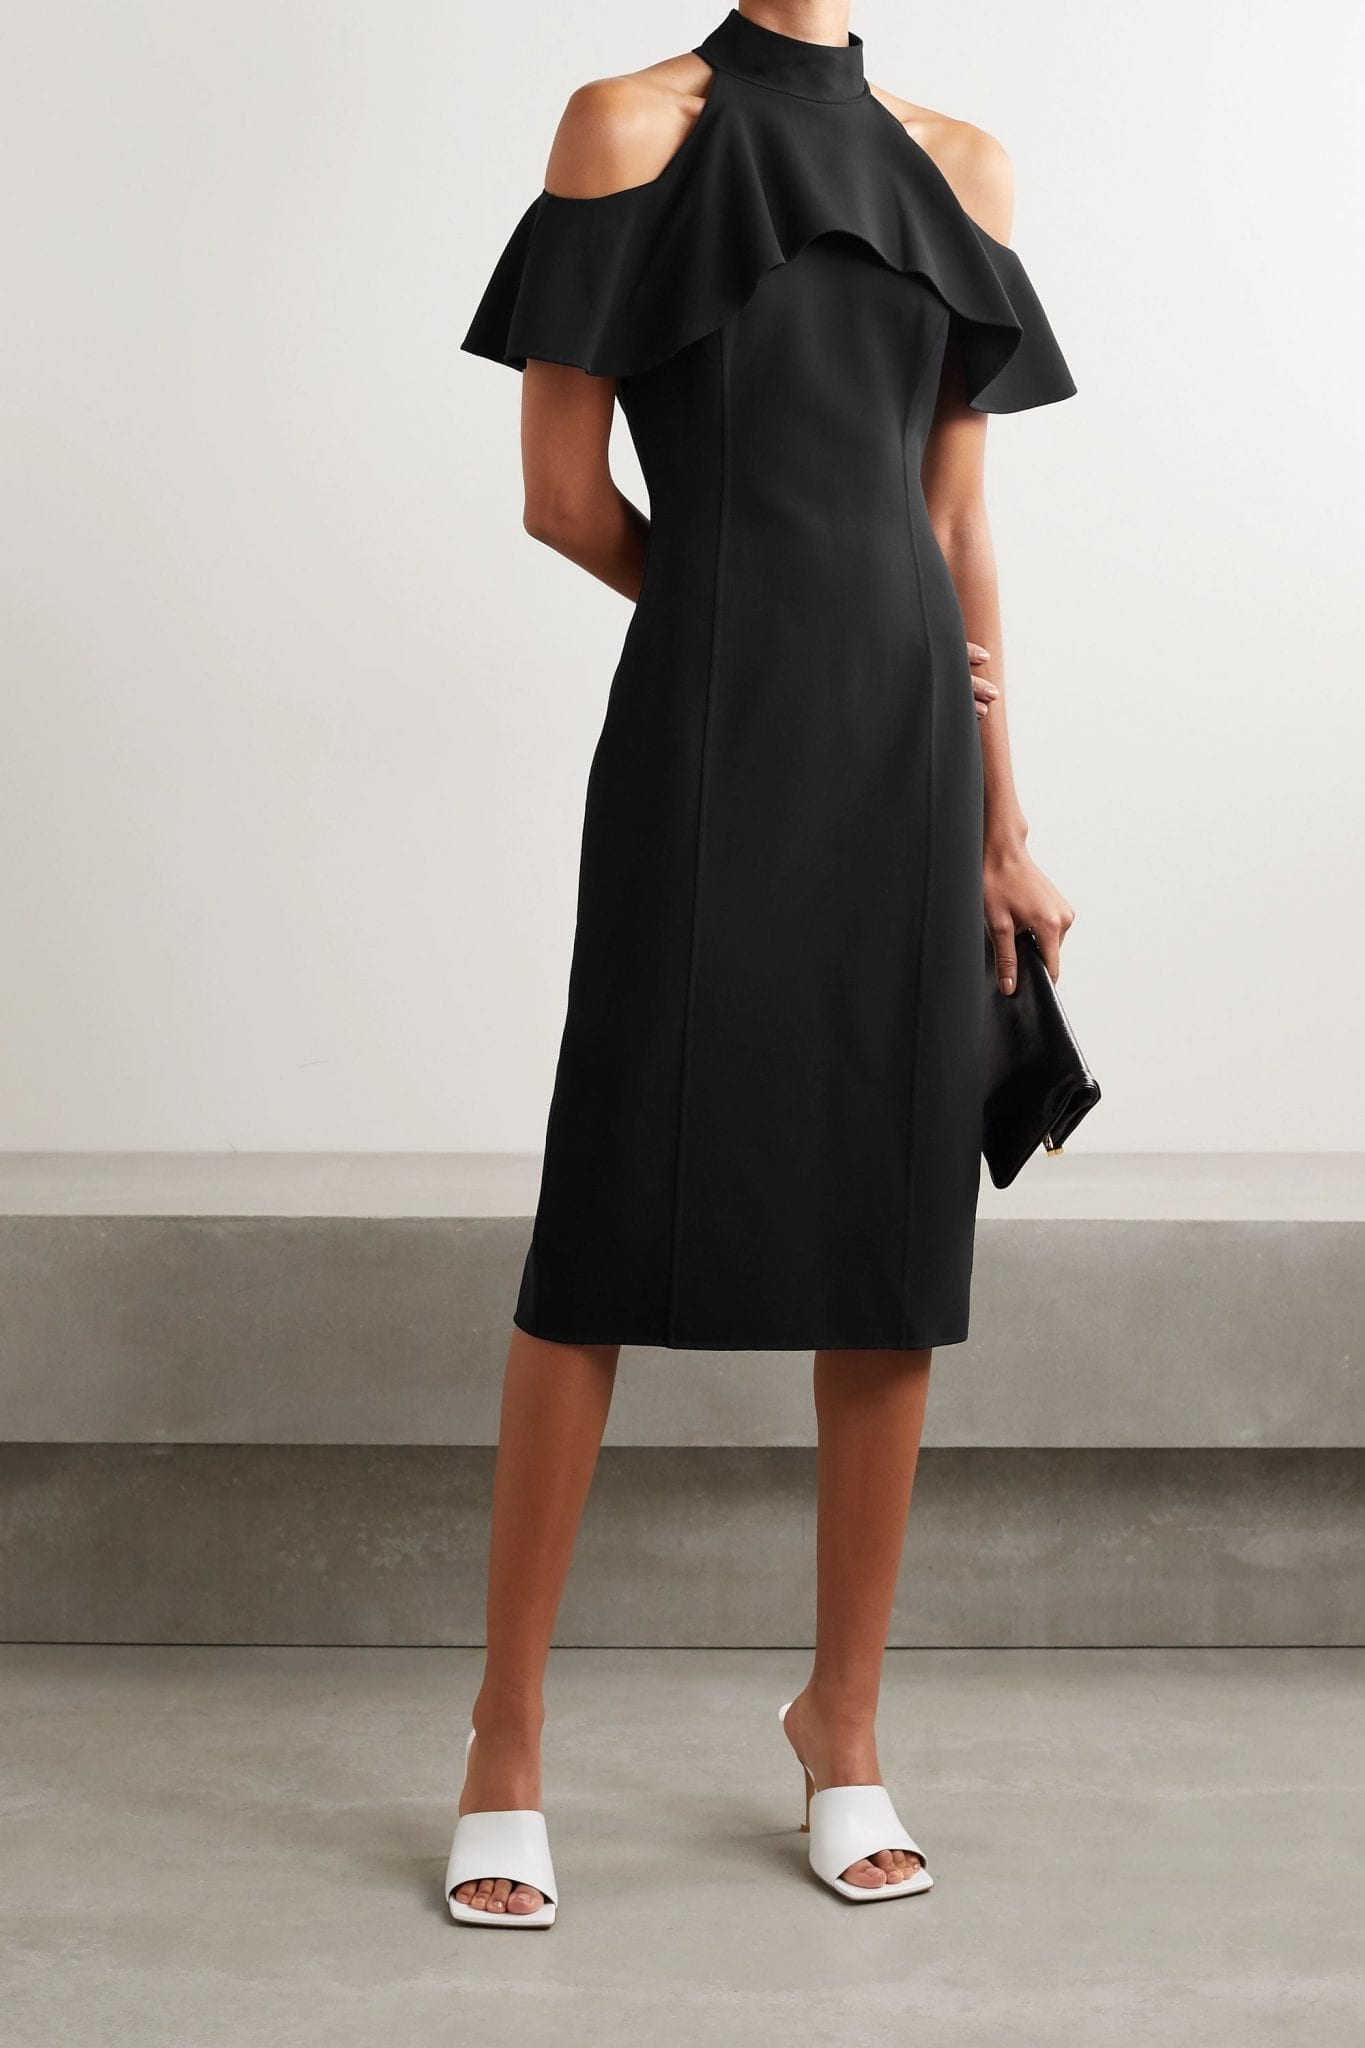 MICHAEL KORS COLLECTION Cold-shoulder Ruffled Stretch-wool Midi Dress